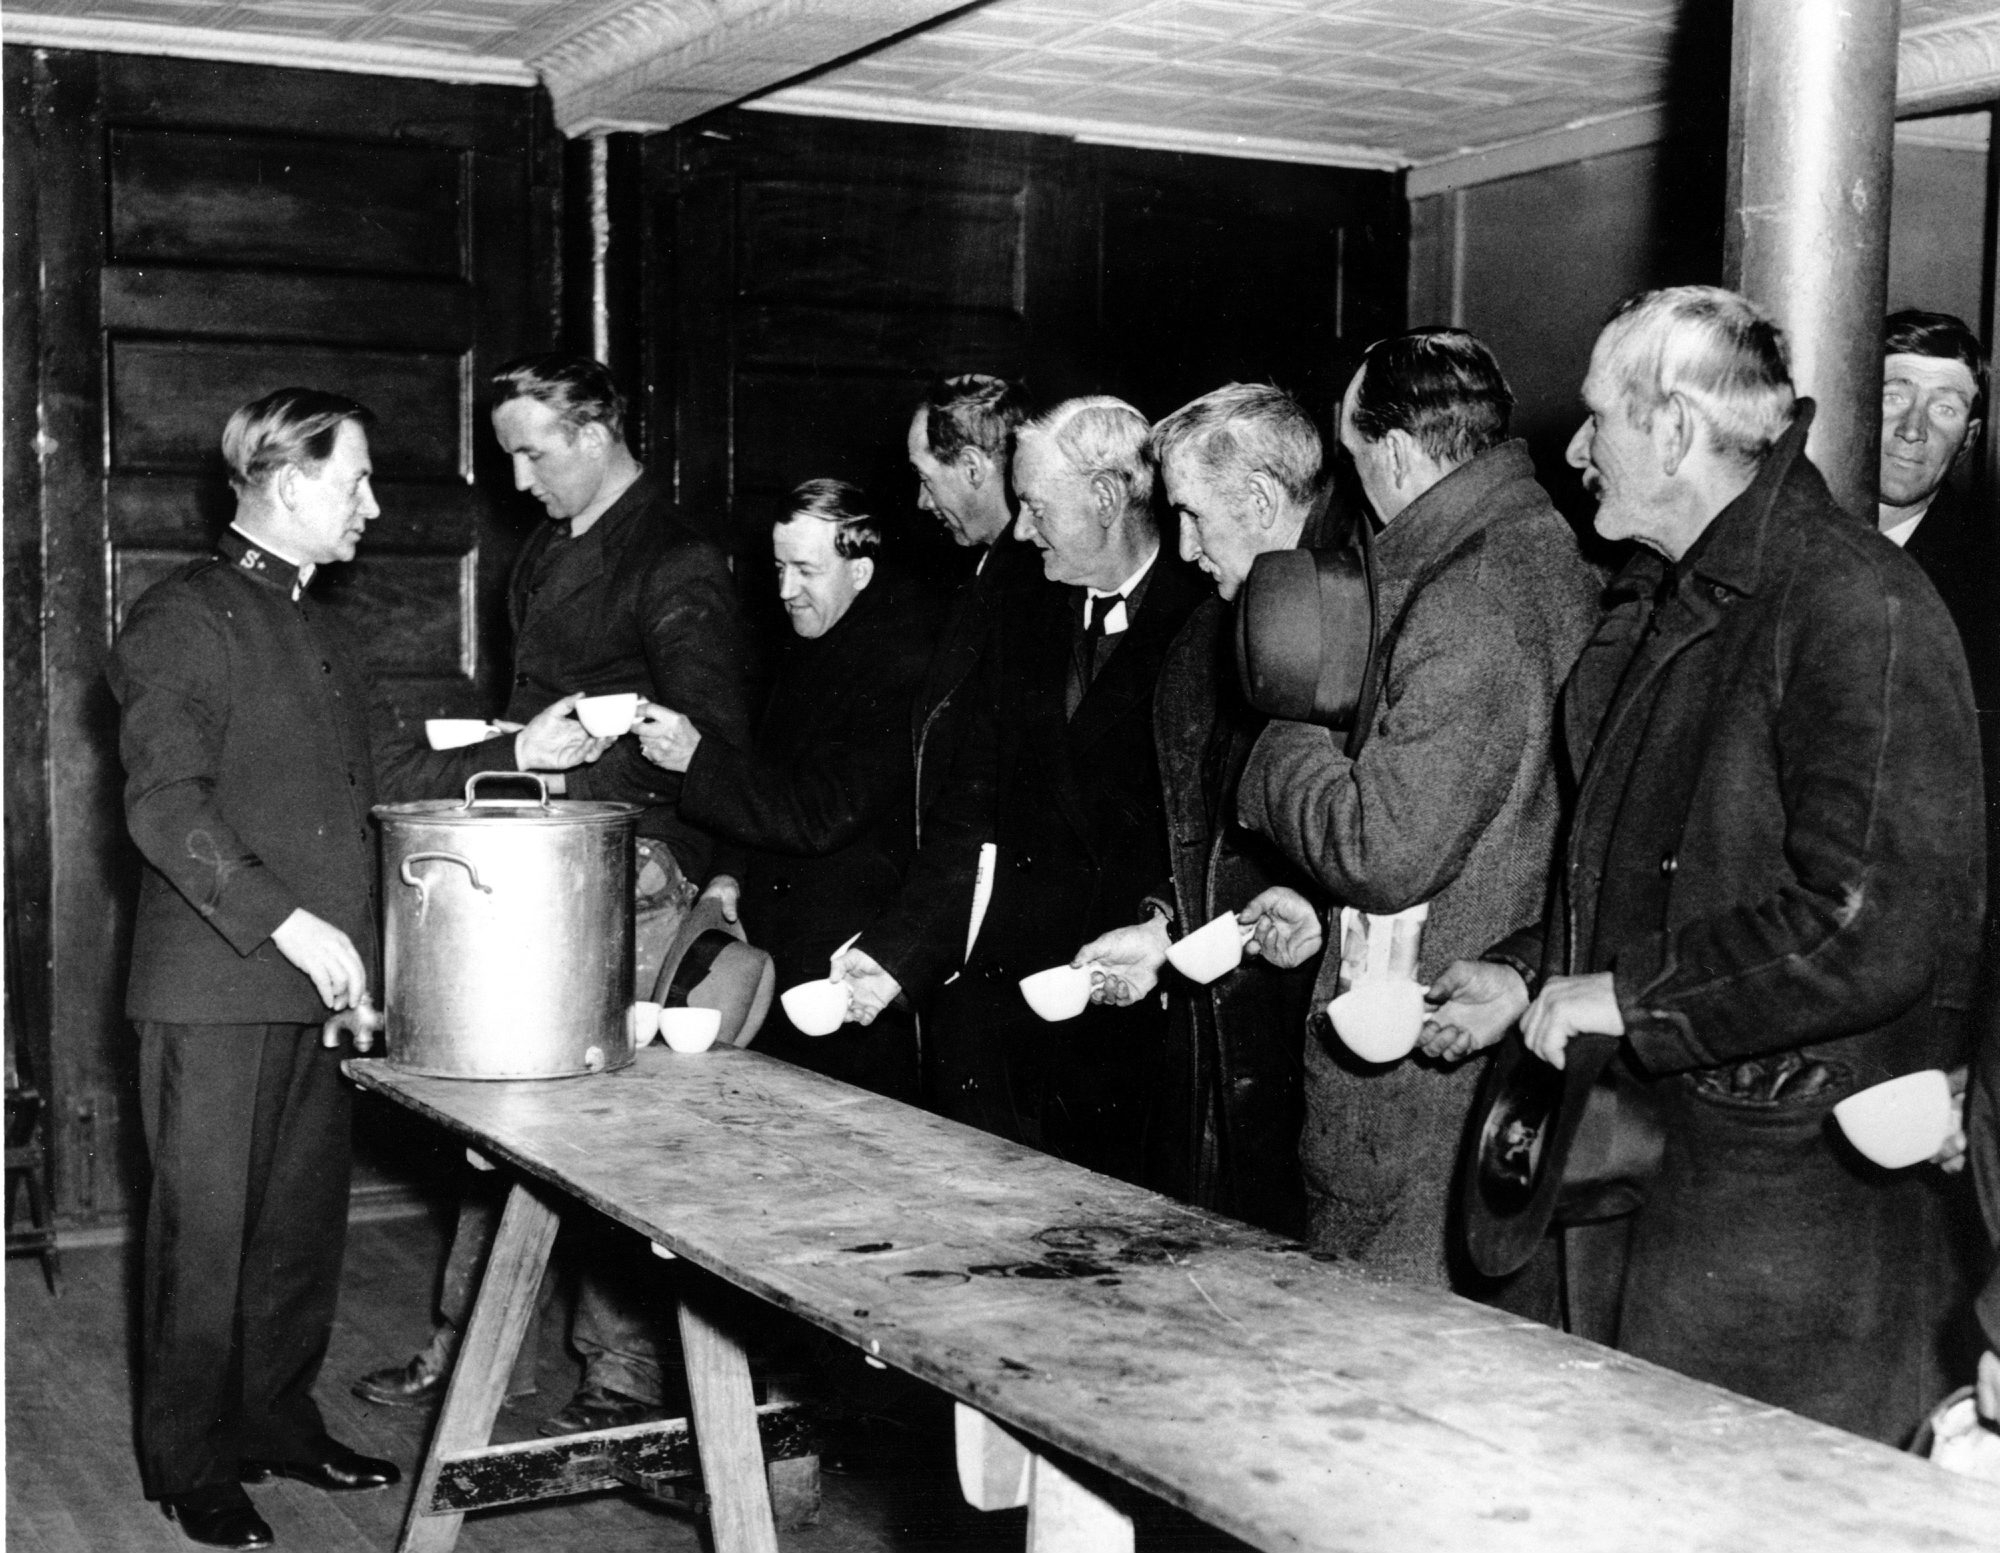 A Salvation Army relief worker tends to a line at a soup kitchen during the Great Depression, when the unemployment rate soared to nearly 20 percent. Many Americans today are still struggling to find jobs.